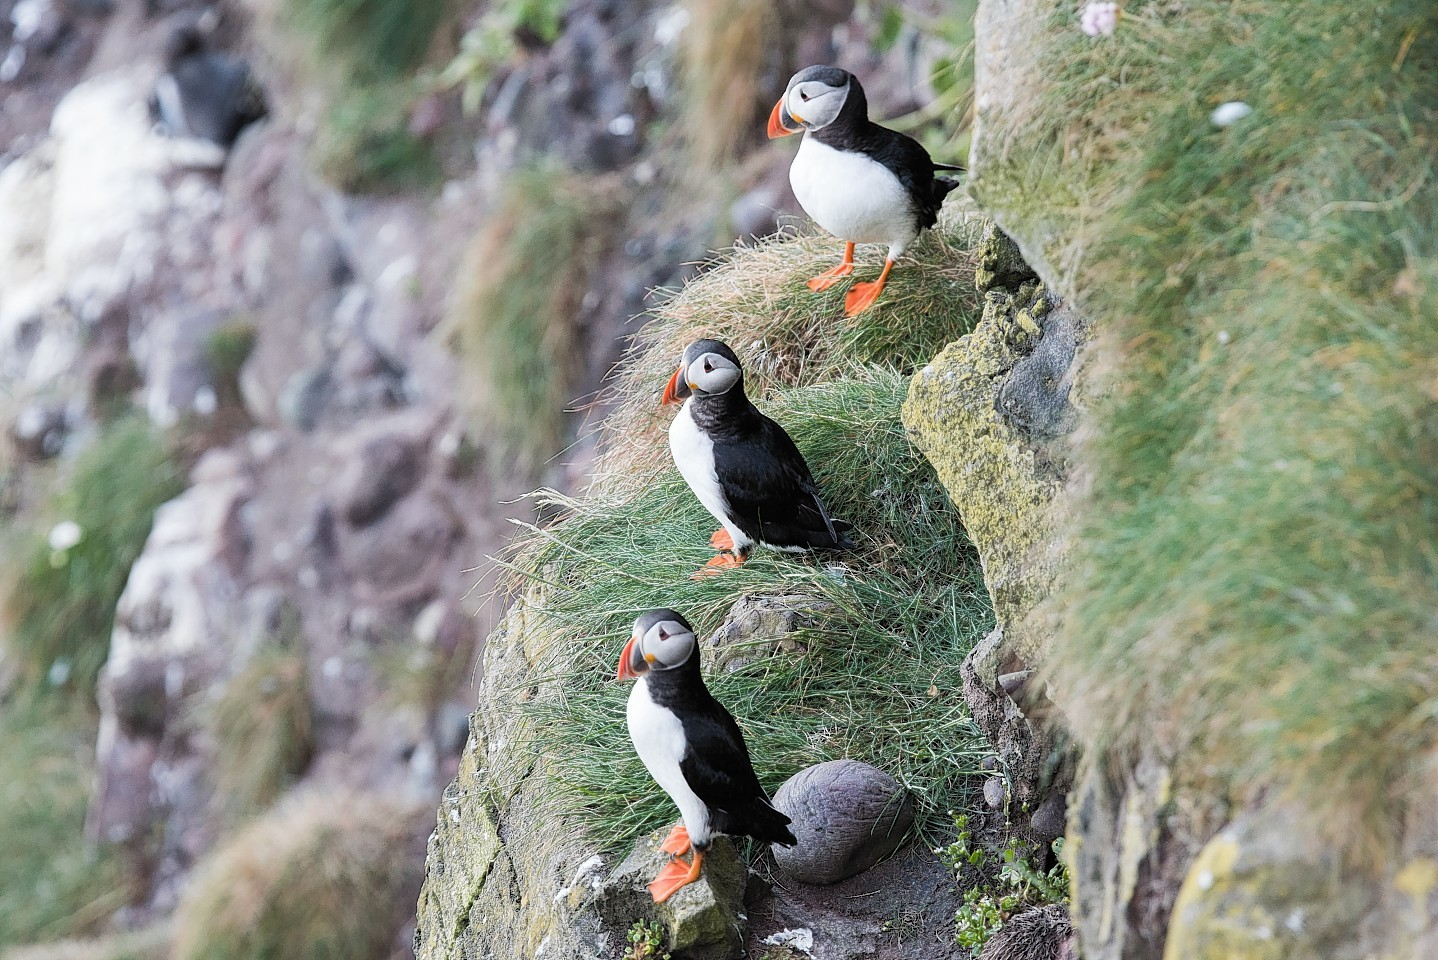 Puffins at Fowlsheugh nature reserve